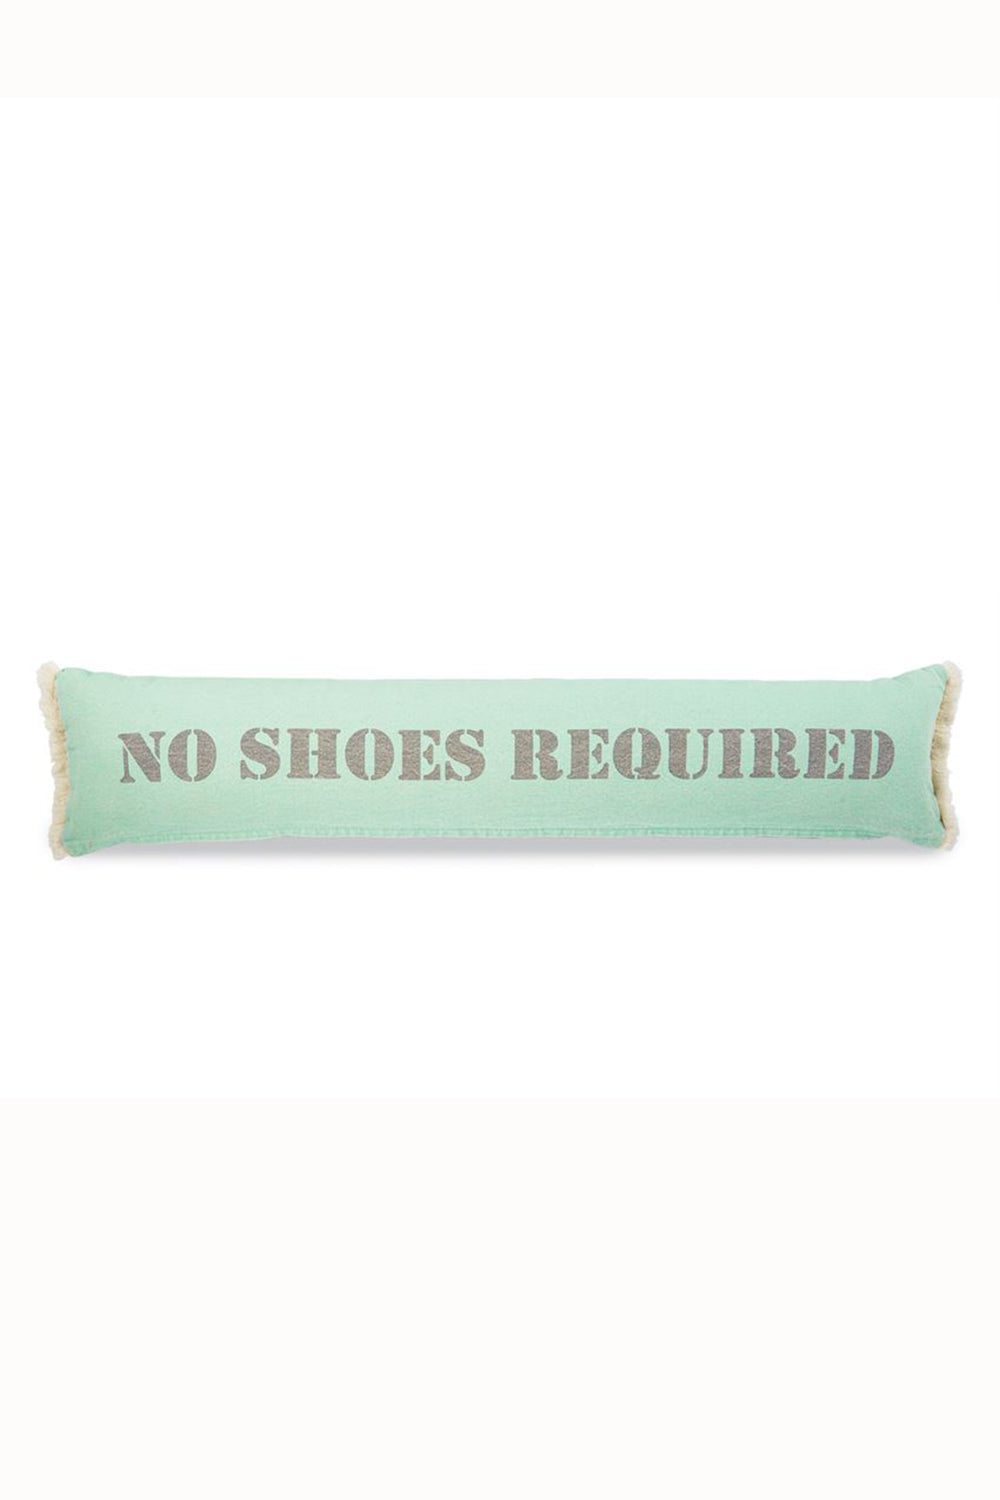 Skinny Pillow - No Shoes